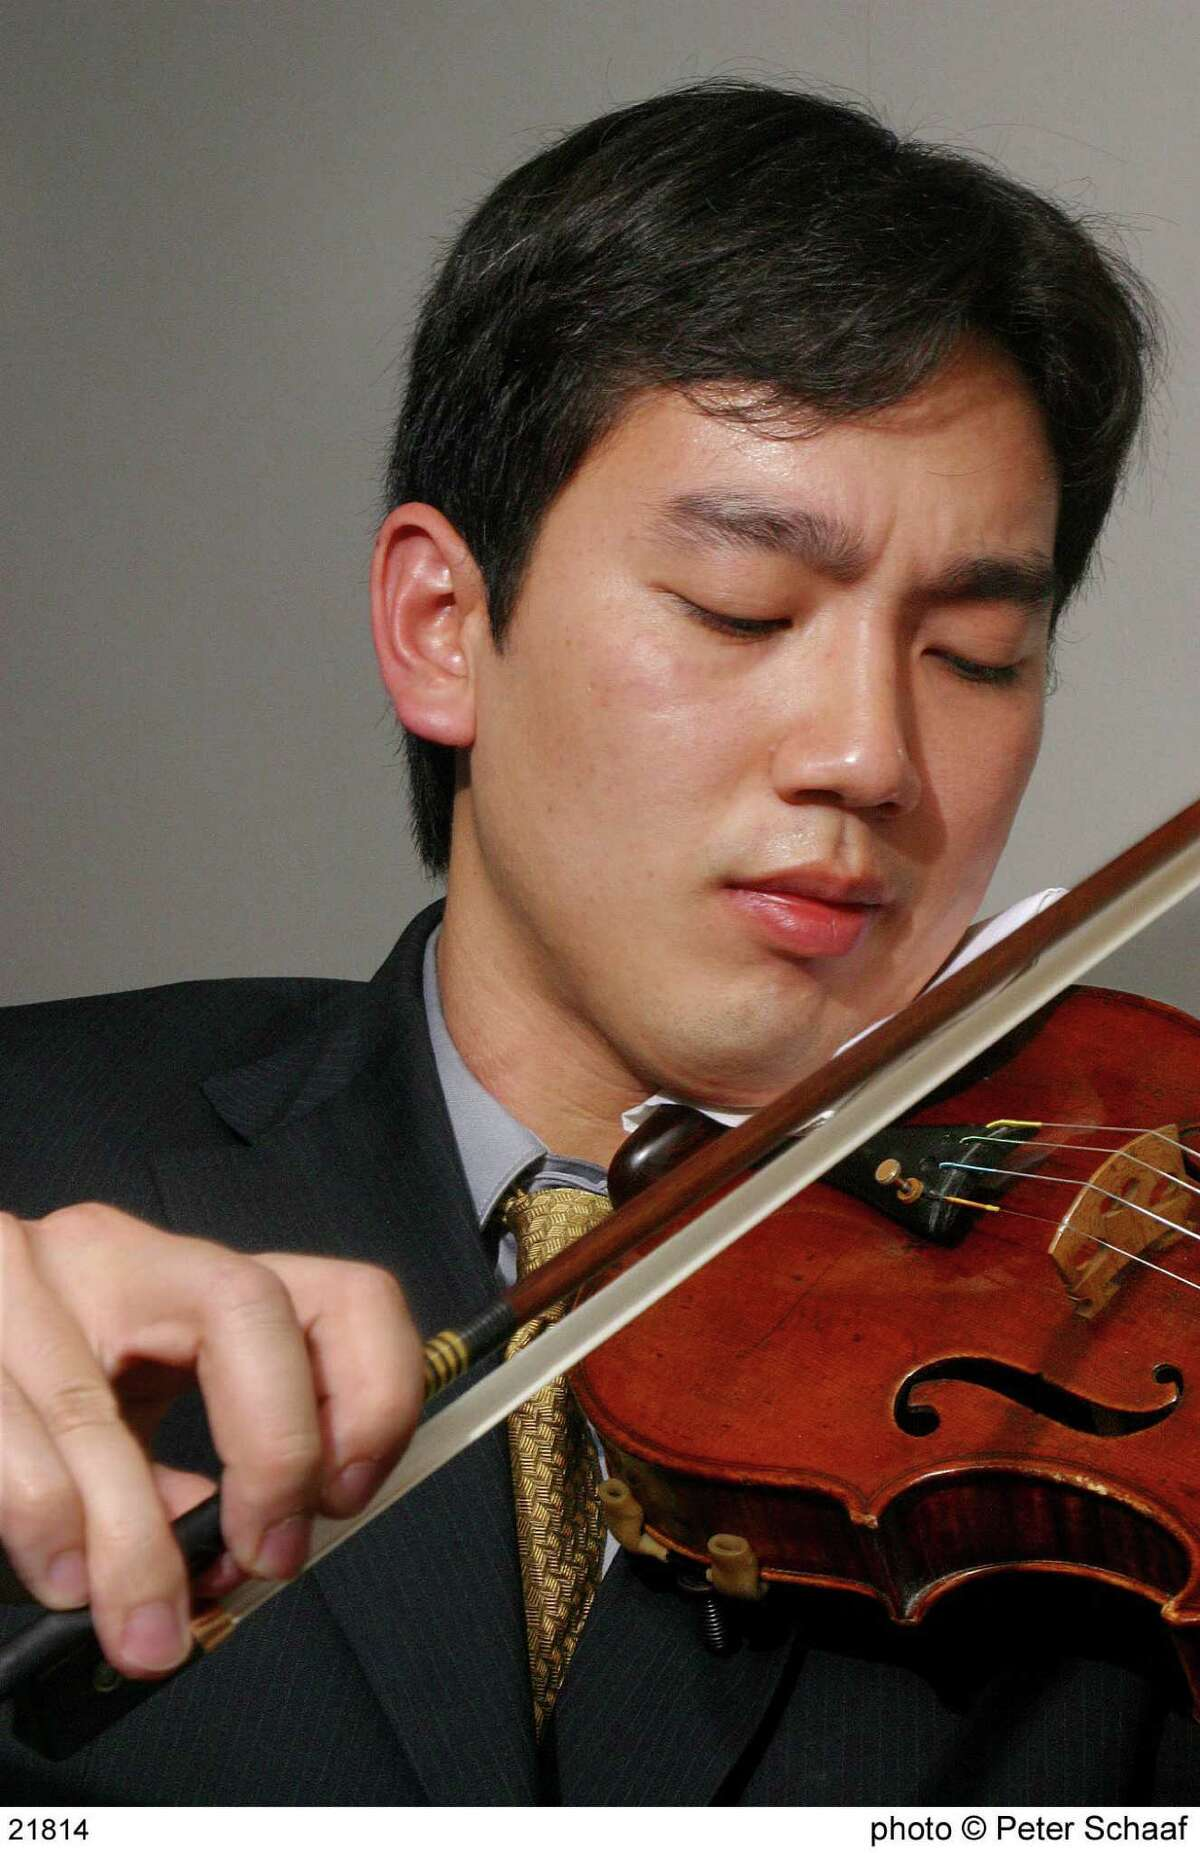 Frank Huang performing in the final round of the 2003 Walter W. Naumburg International Violin Competition at Lincoln Center, New York City. Huang was selected winner of the 2013 competition and as a result, was awarded a $10,000 cash prize as well as two Alice Tully Hall recitals, concerts throughout the country and the premiere of a new unaccompanied violin sonata by Donal Martino.